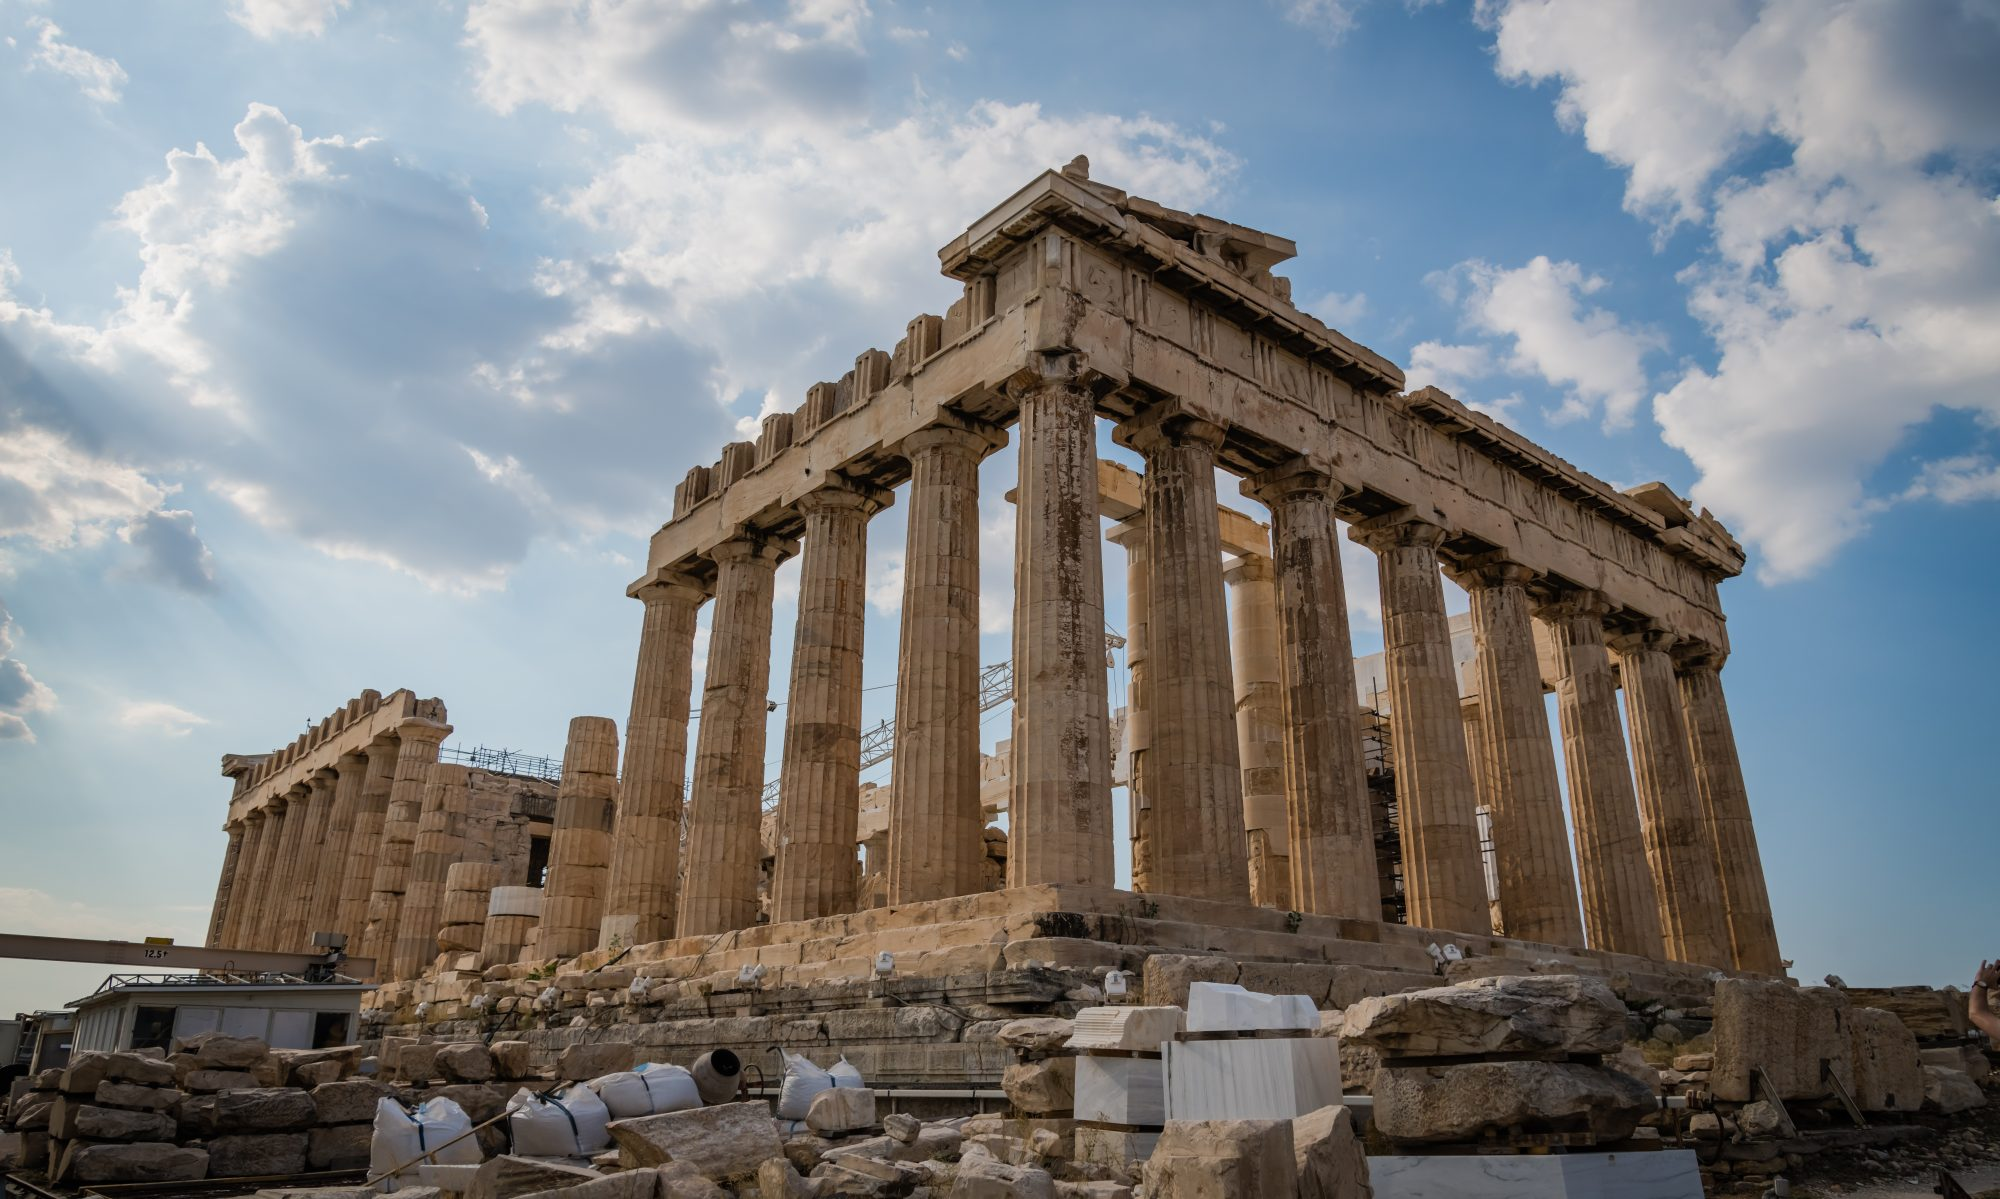 Change & Resilience in Antiquity